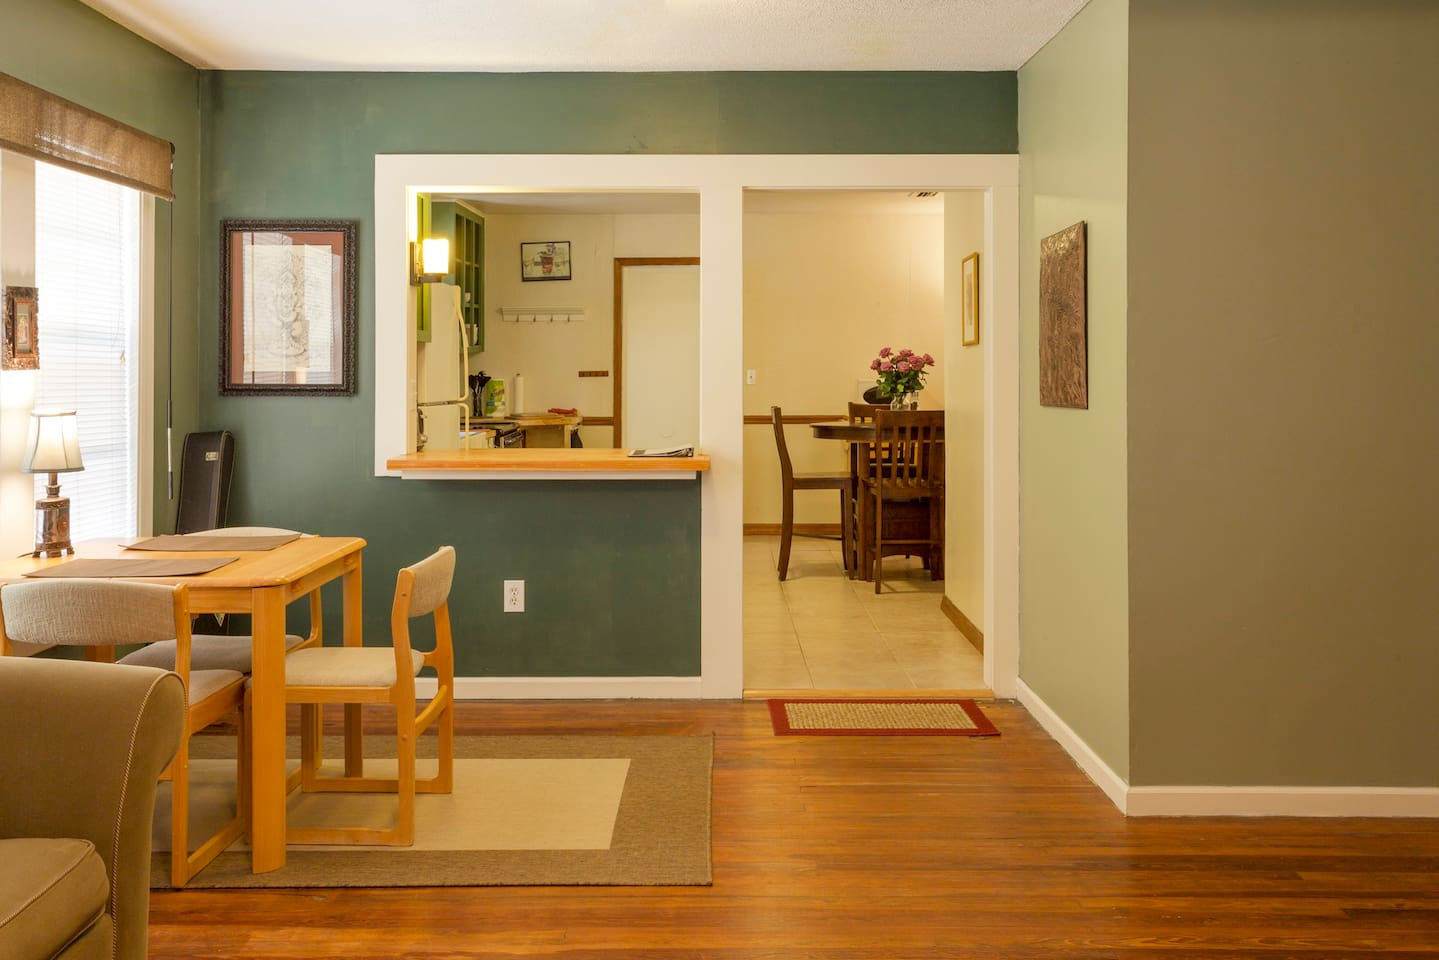 2 dining areas with kitchen pass through